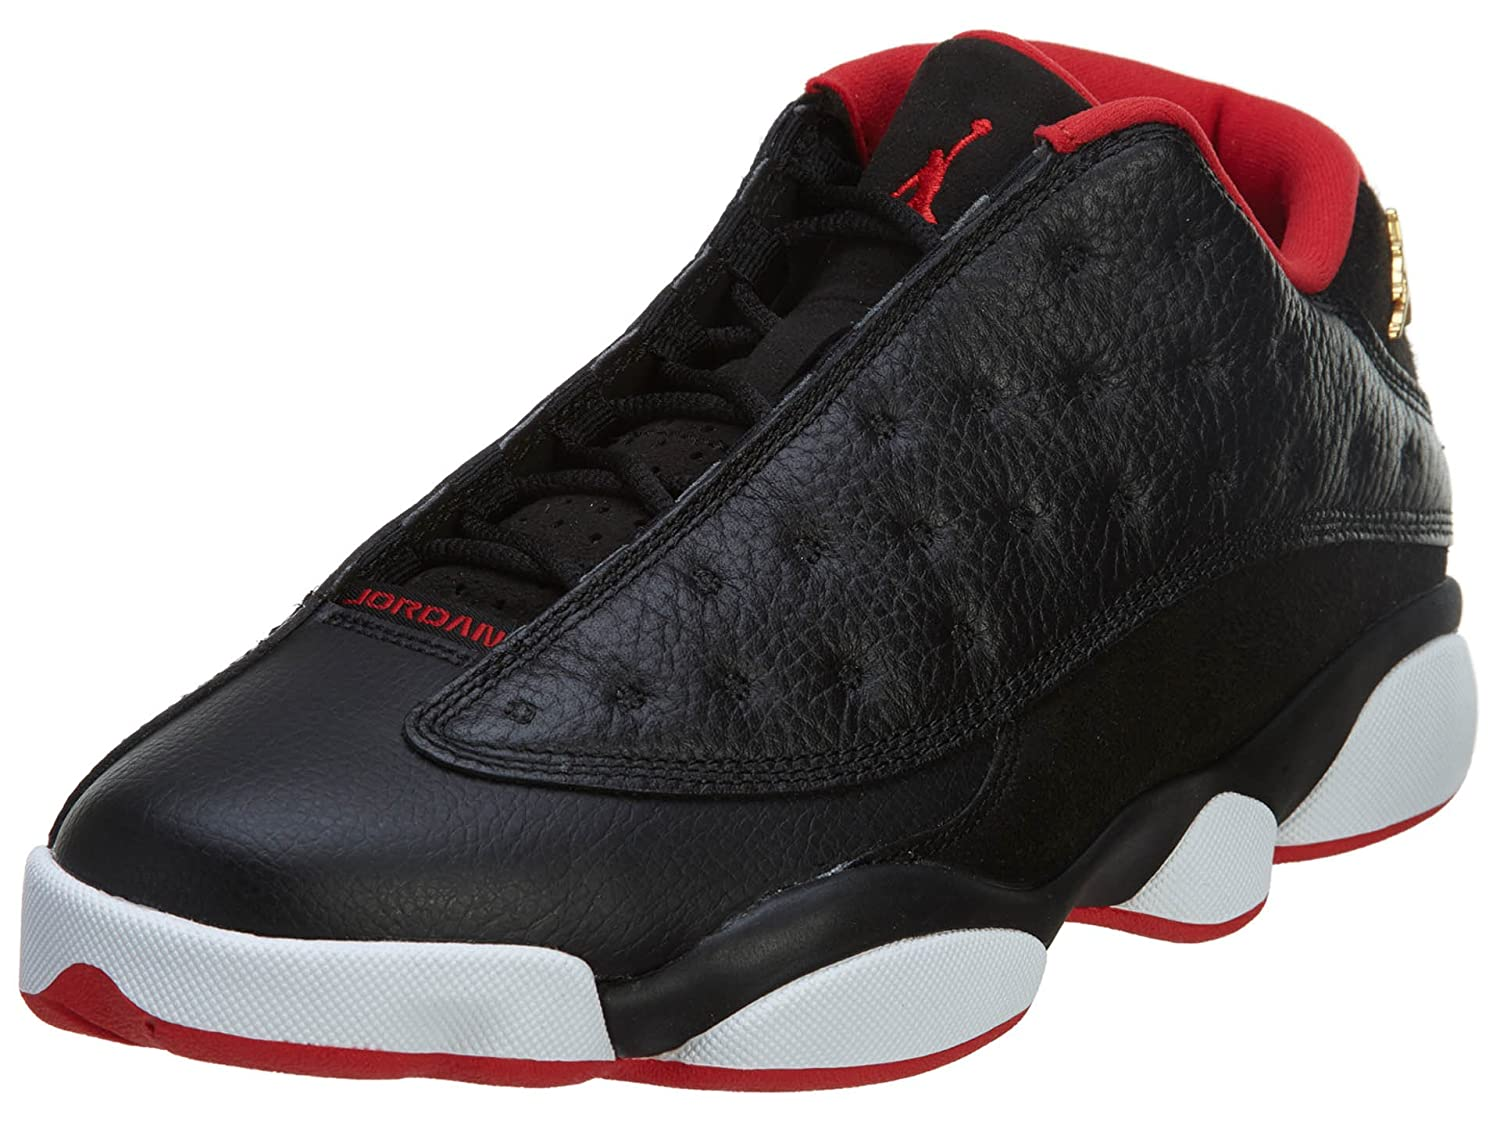 on sale 184c7 5ac04 Amazon.com: Air Jordan 13 Retro Low